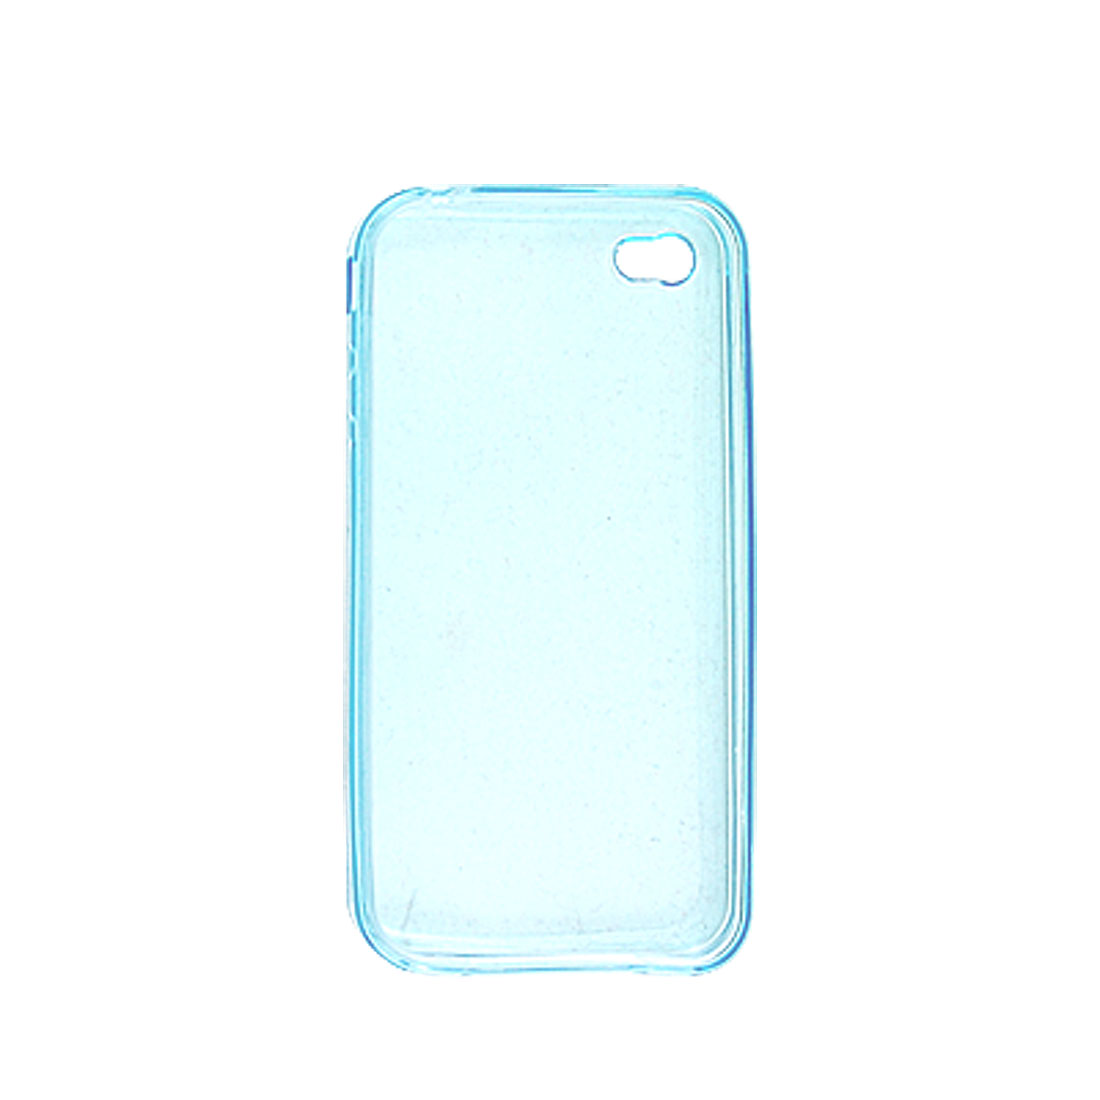 Protective Clear Blue Soft Plastic Protector for iPhone 4